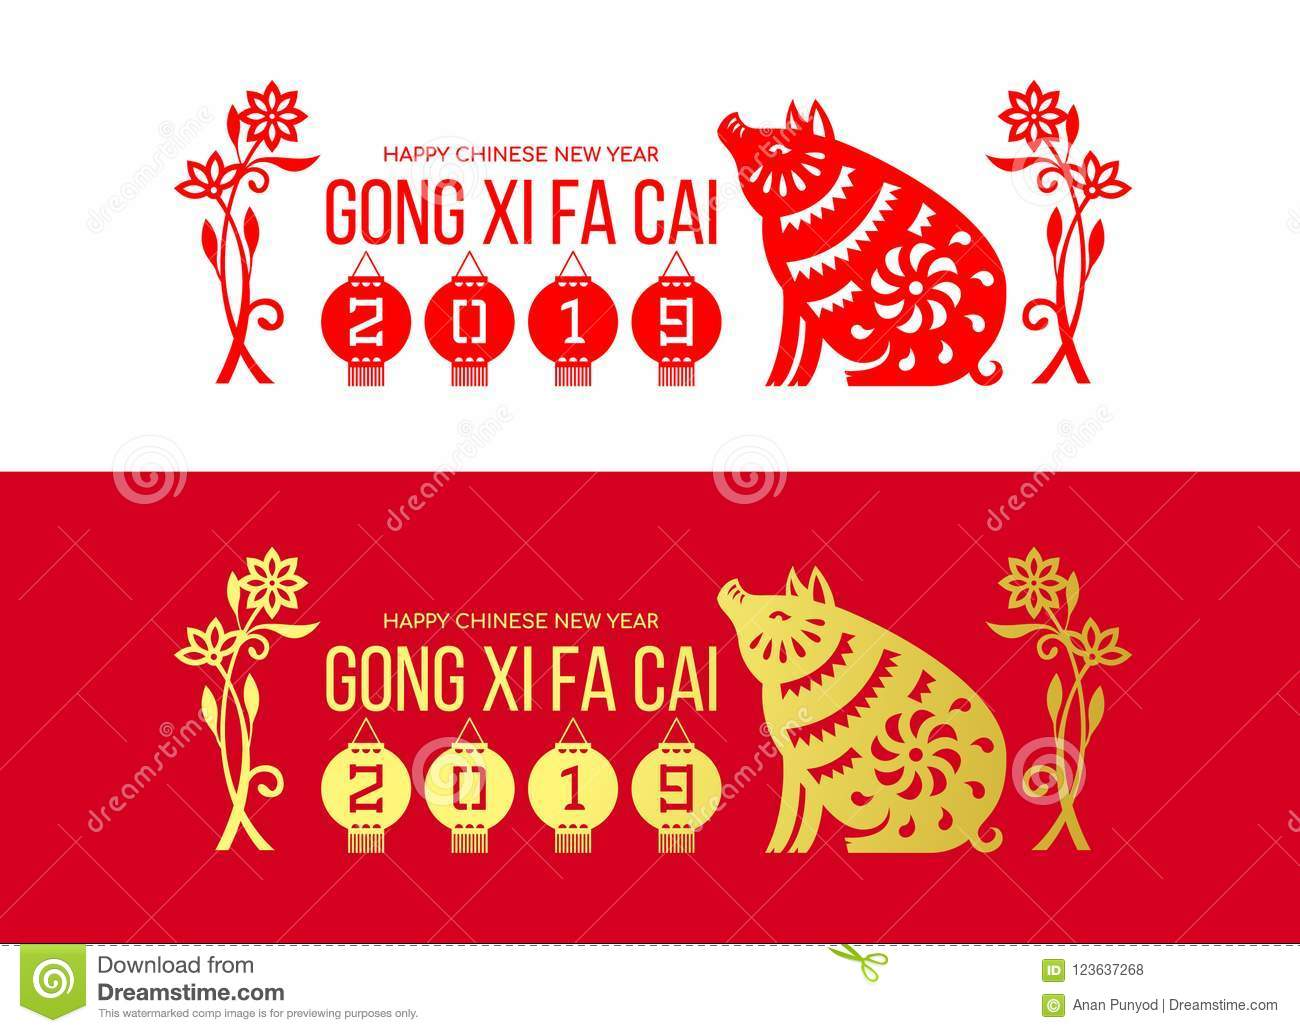 Happy chinese new year Gong xi fa cai banner with gold and red tone 2019 number of year in lantern hanger and flwer and pig pa